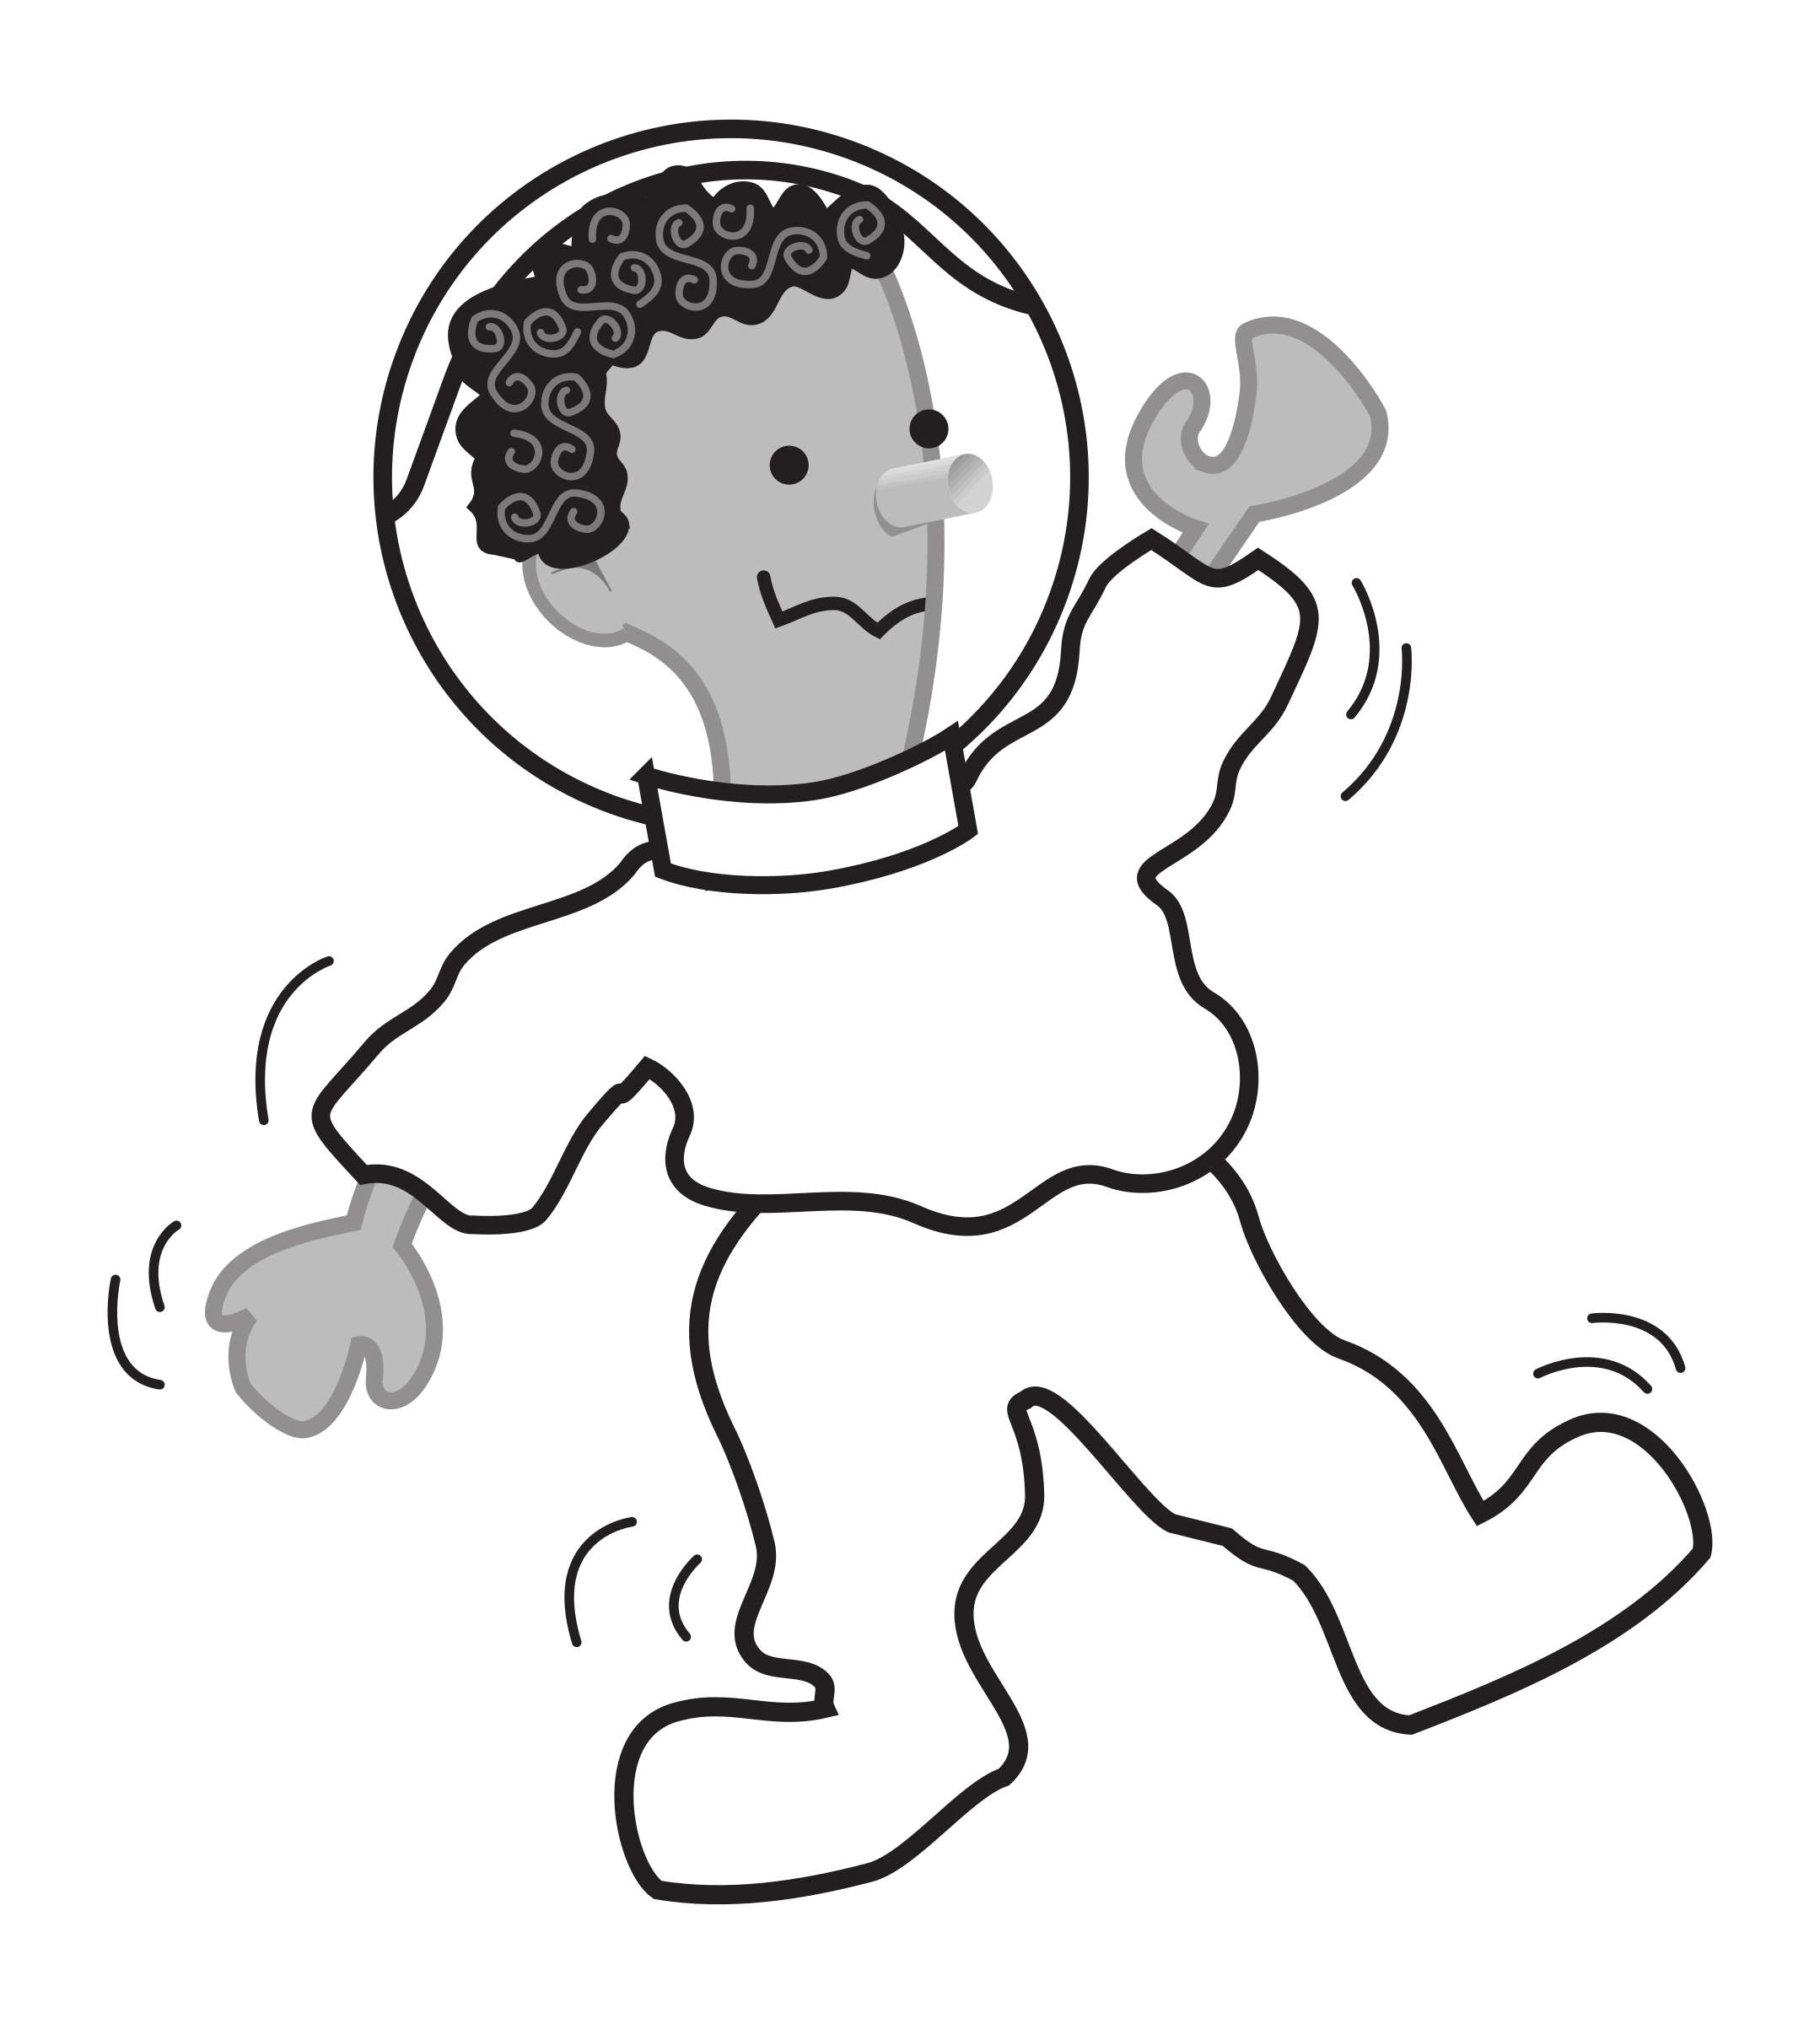 Shaking big image png. Government clipart kid